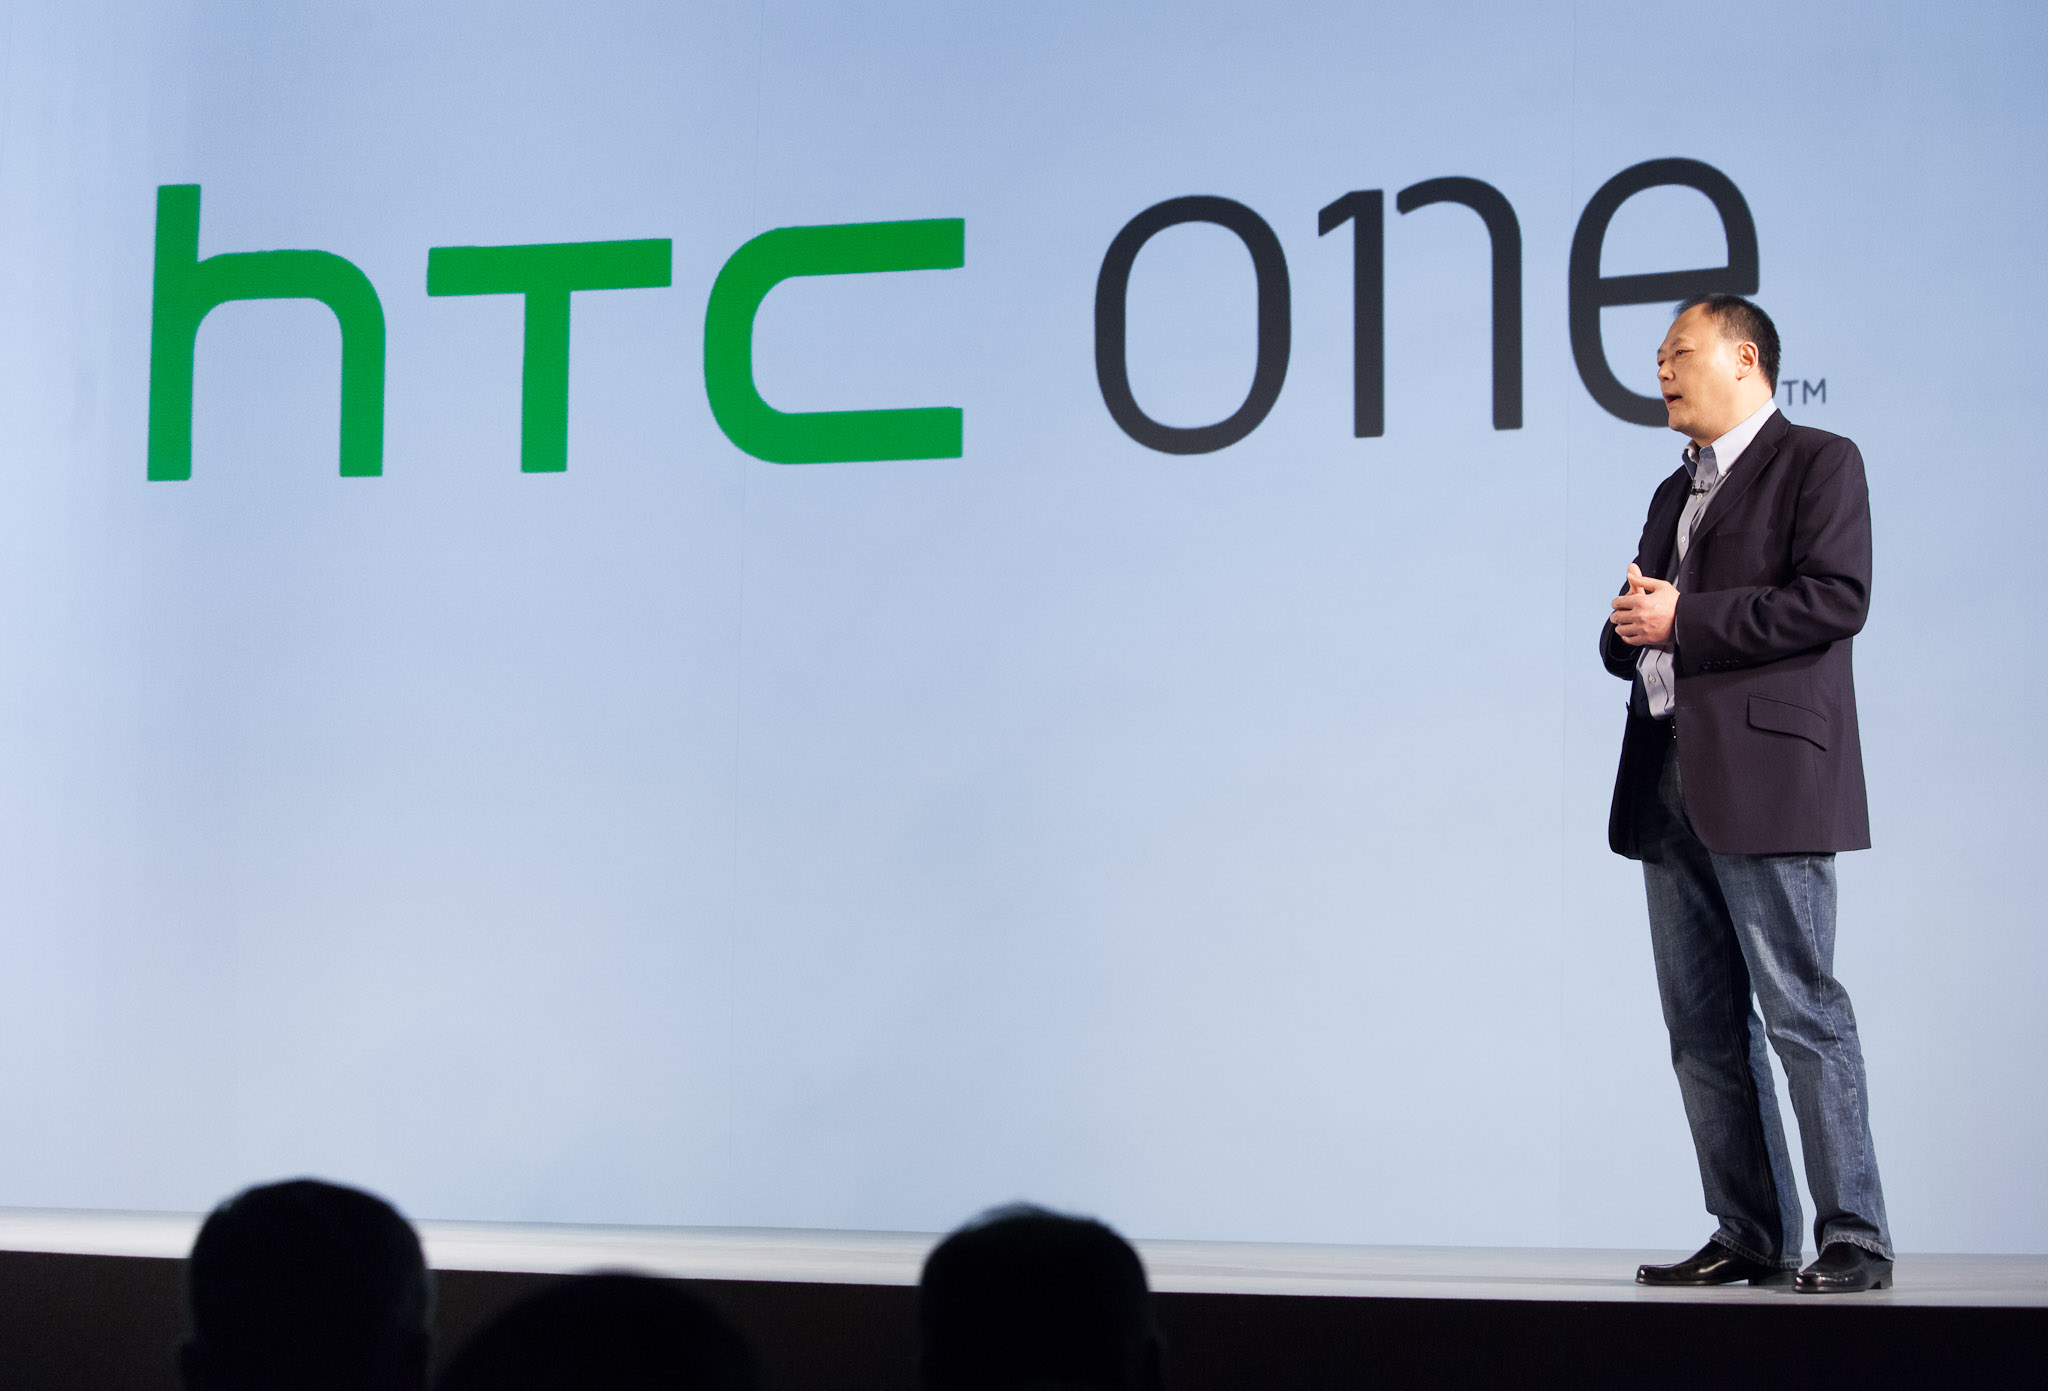 HTC Chief Executive Peter Chou unveils the new HTC One brand name. There are three models--the x, s, and v.